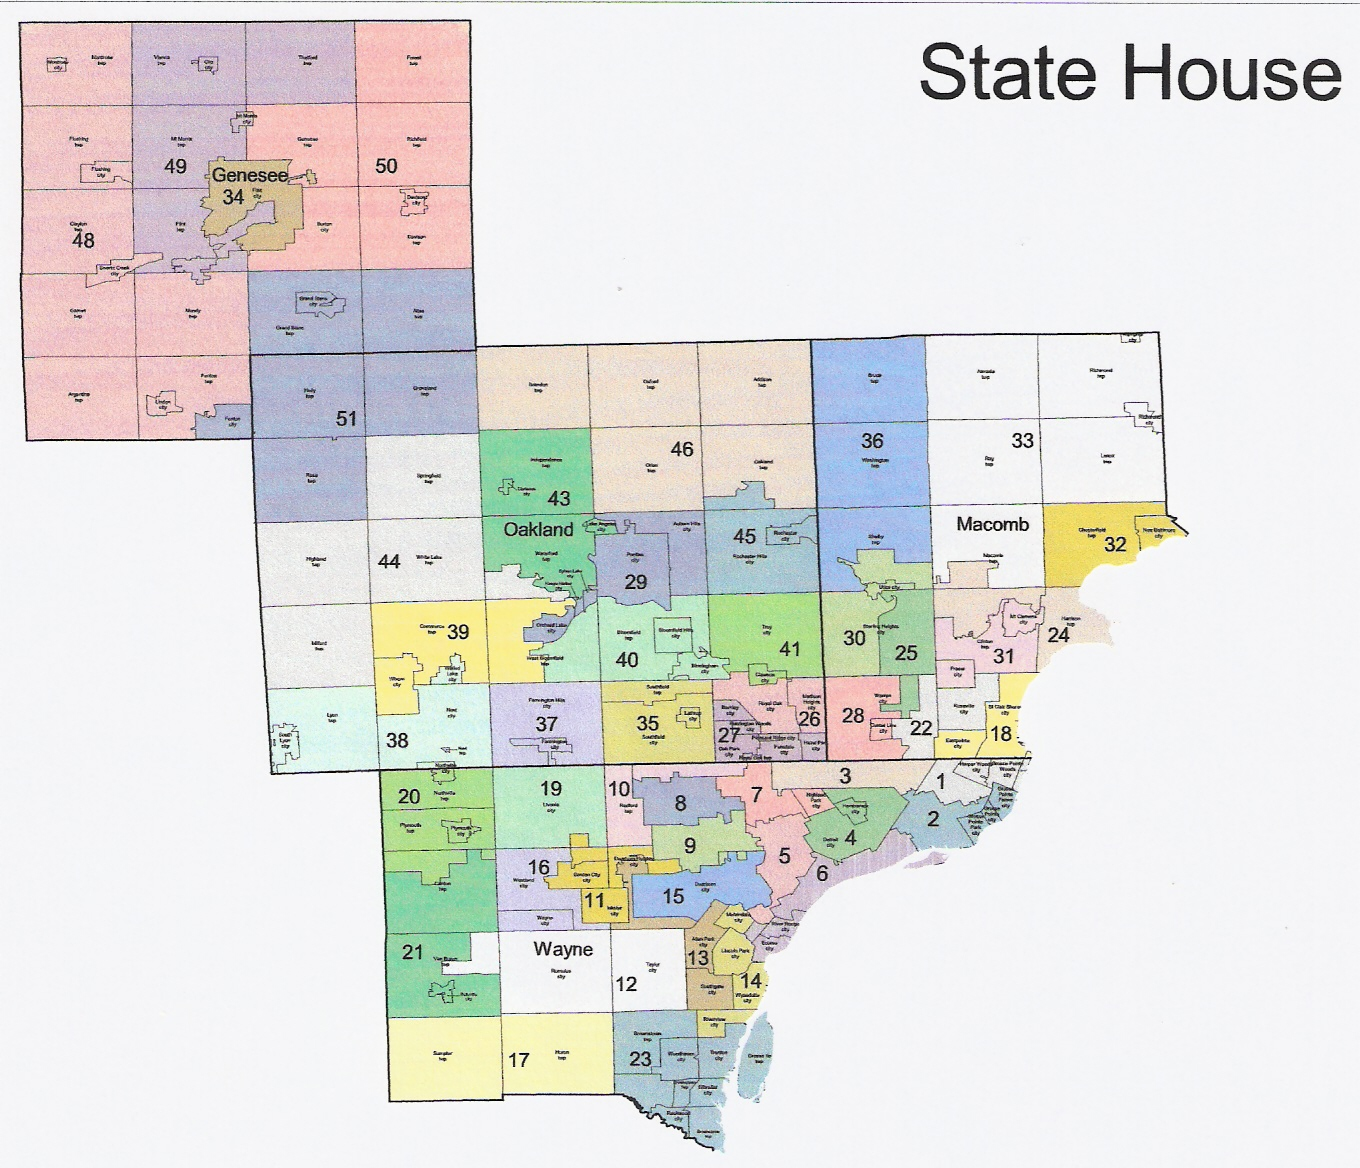 RightMichigan.com || Michigan Redistricting Official Republican State House Map Released